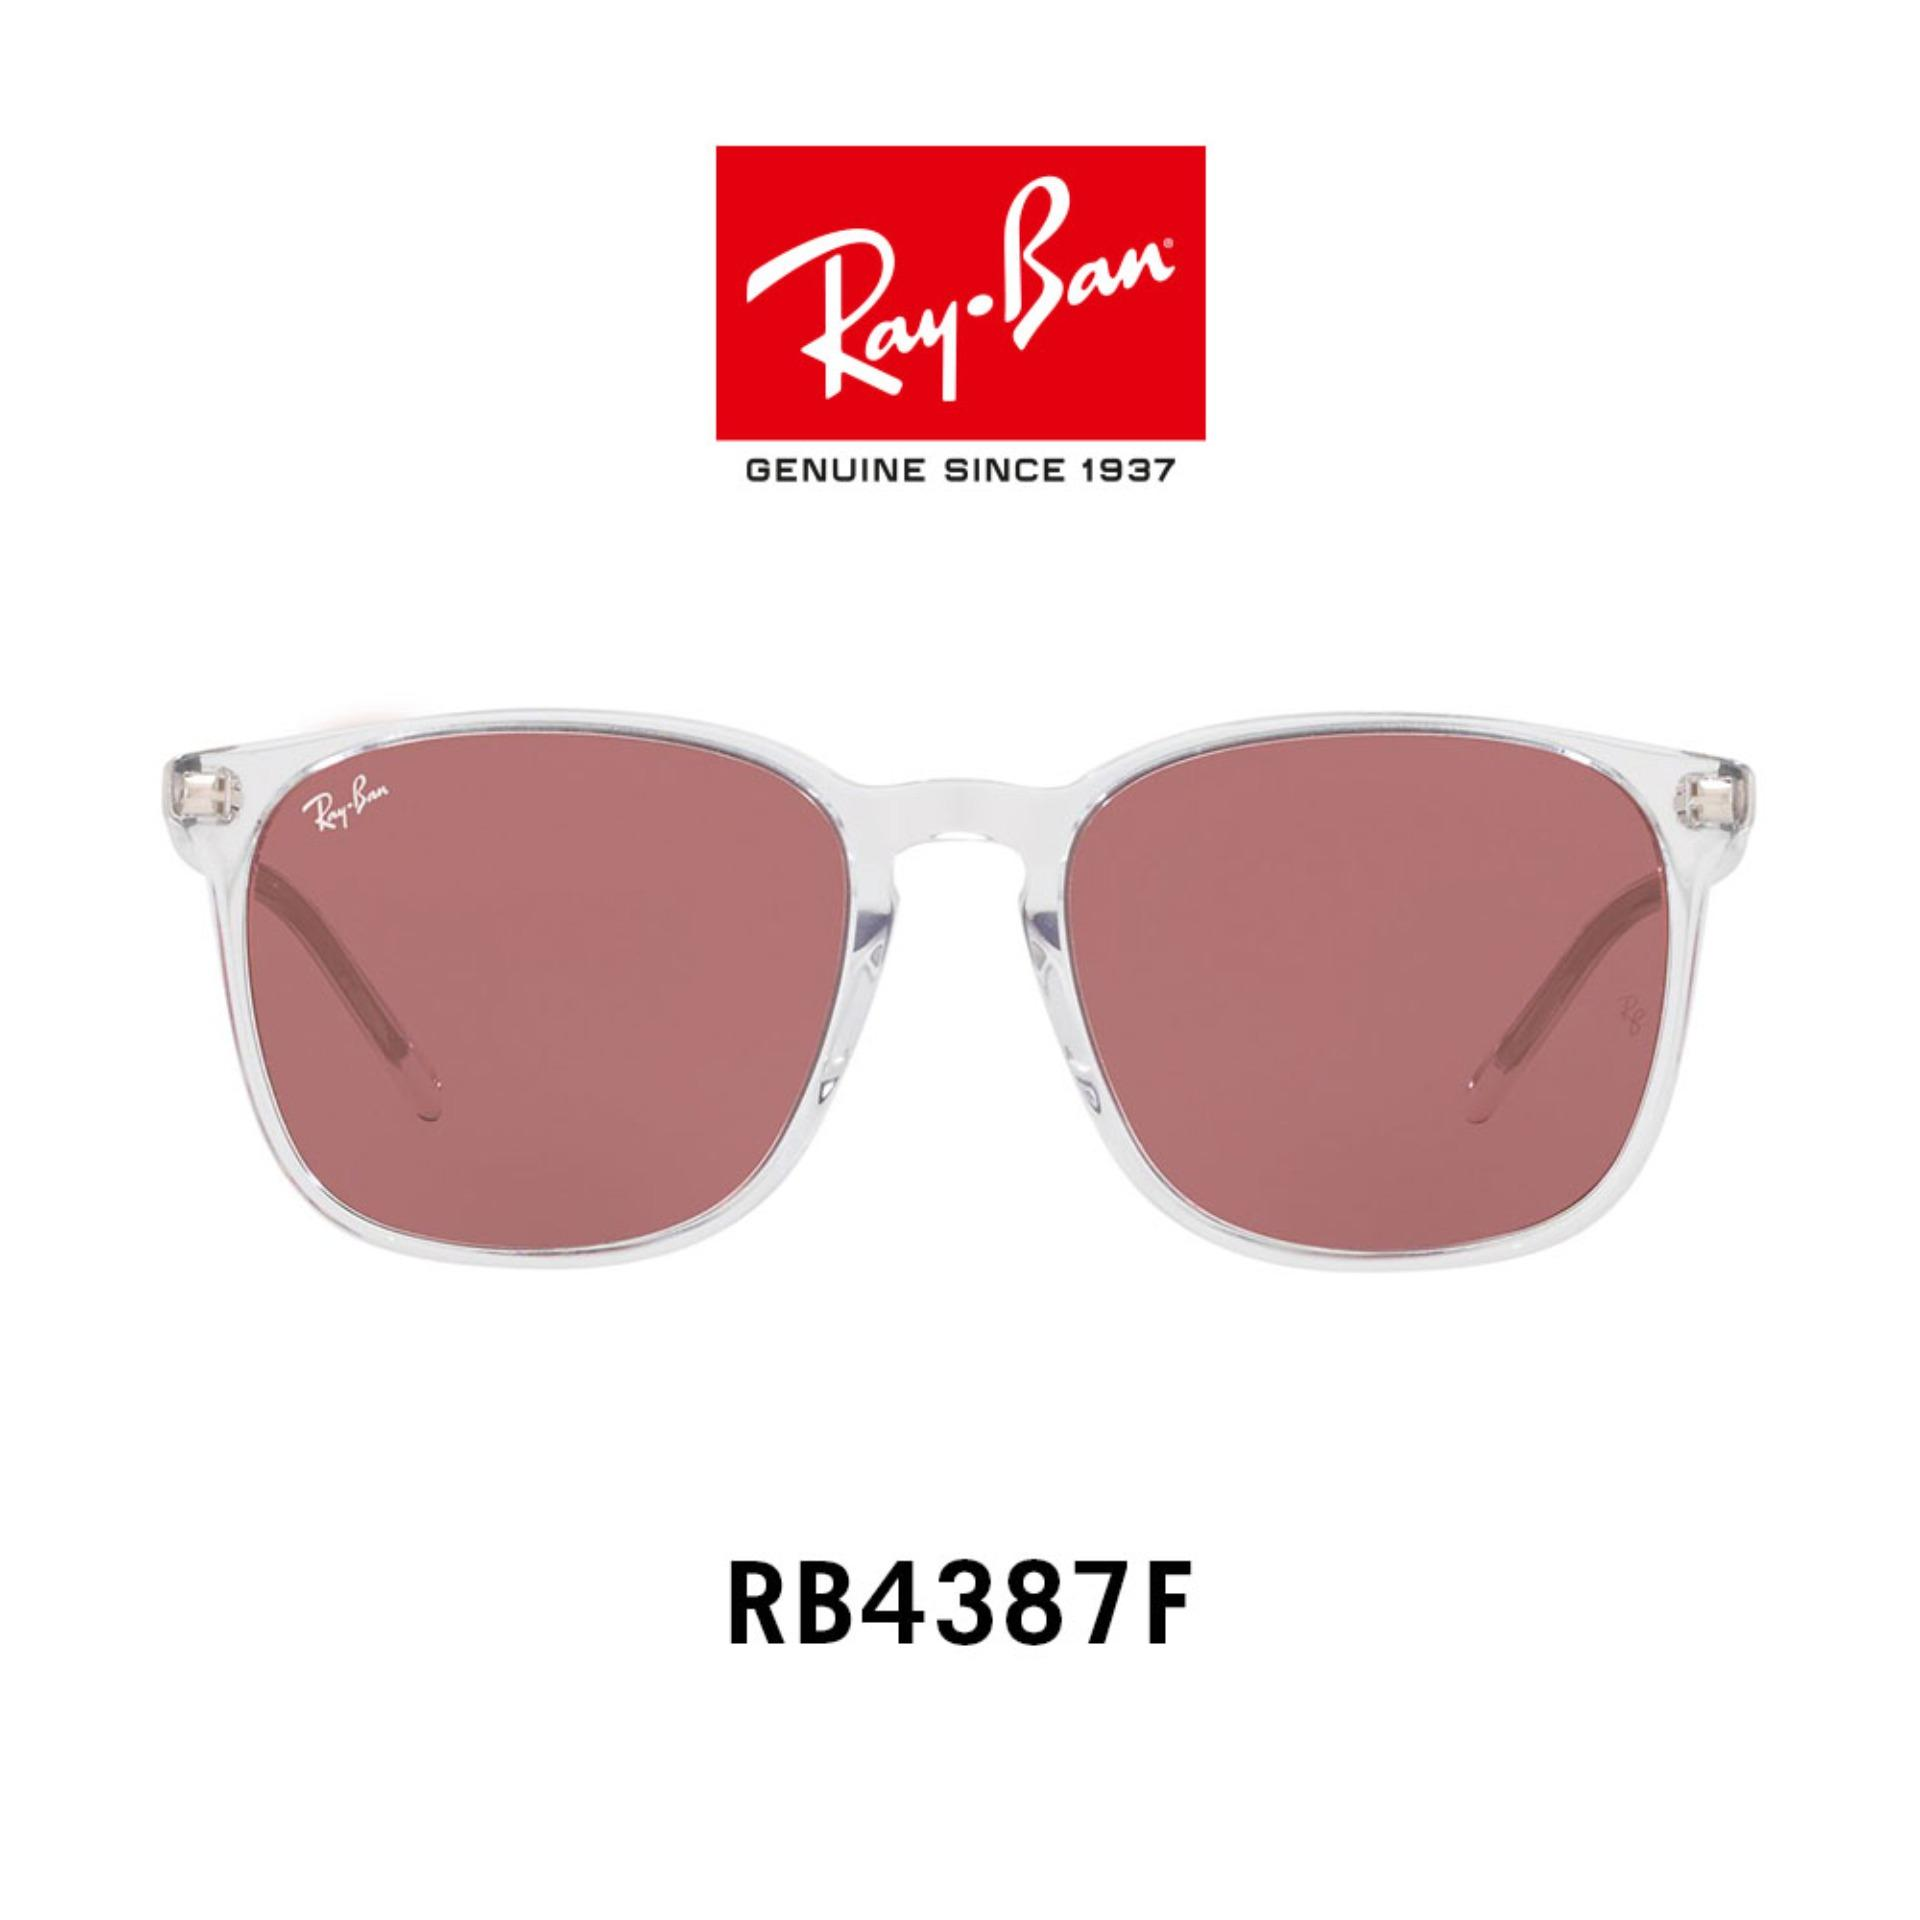 5f99126ea0923 Ray Ban Philippines  Ray Ban price list - Shades   Sunglasses for ...